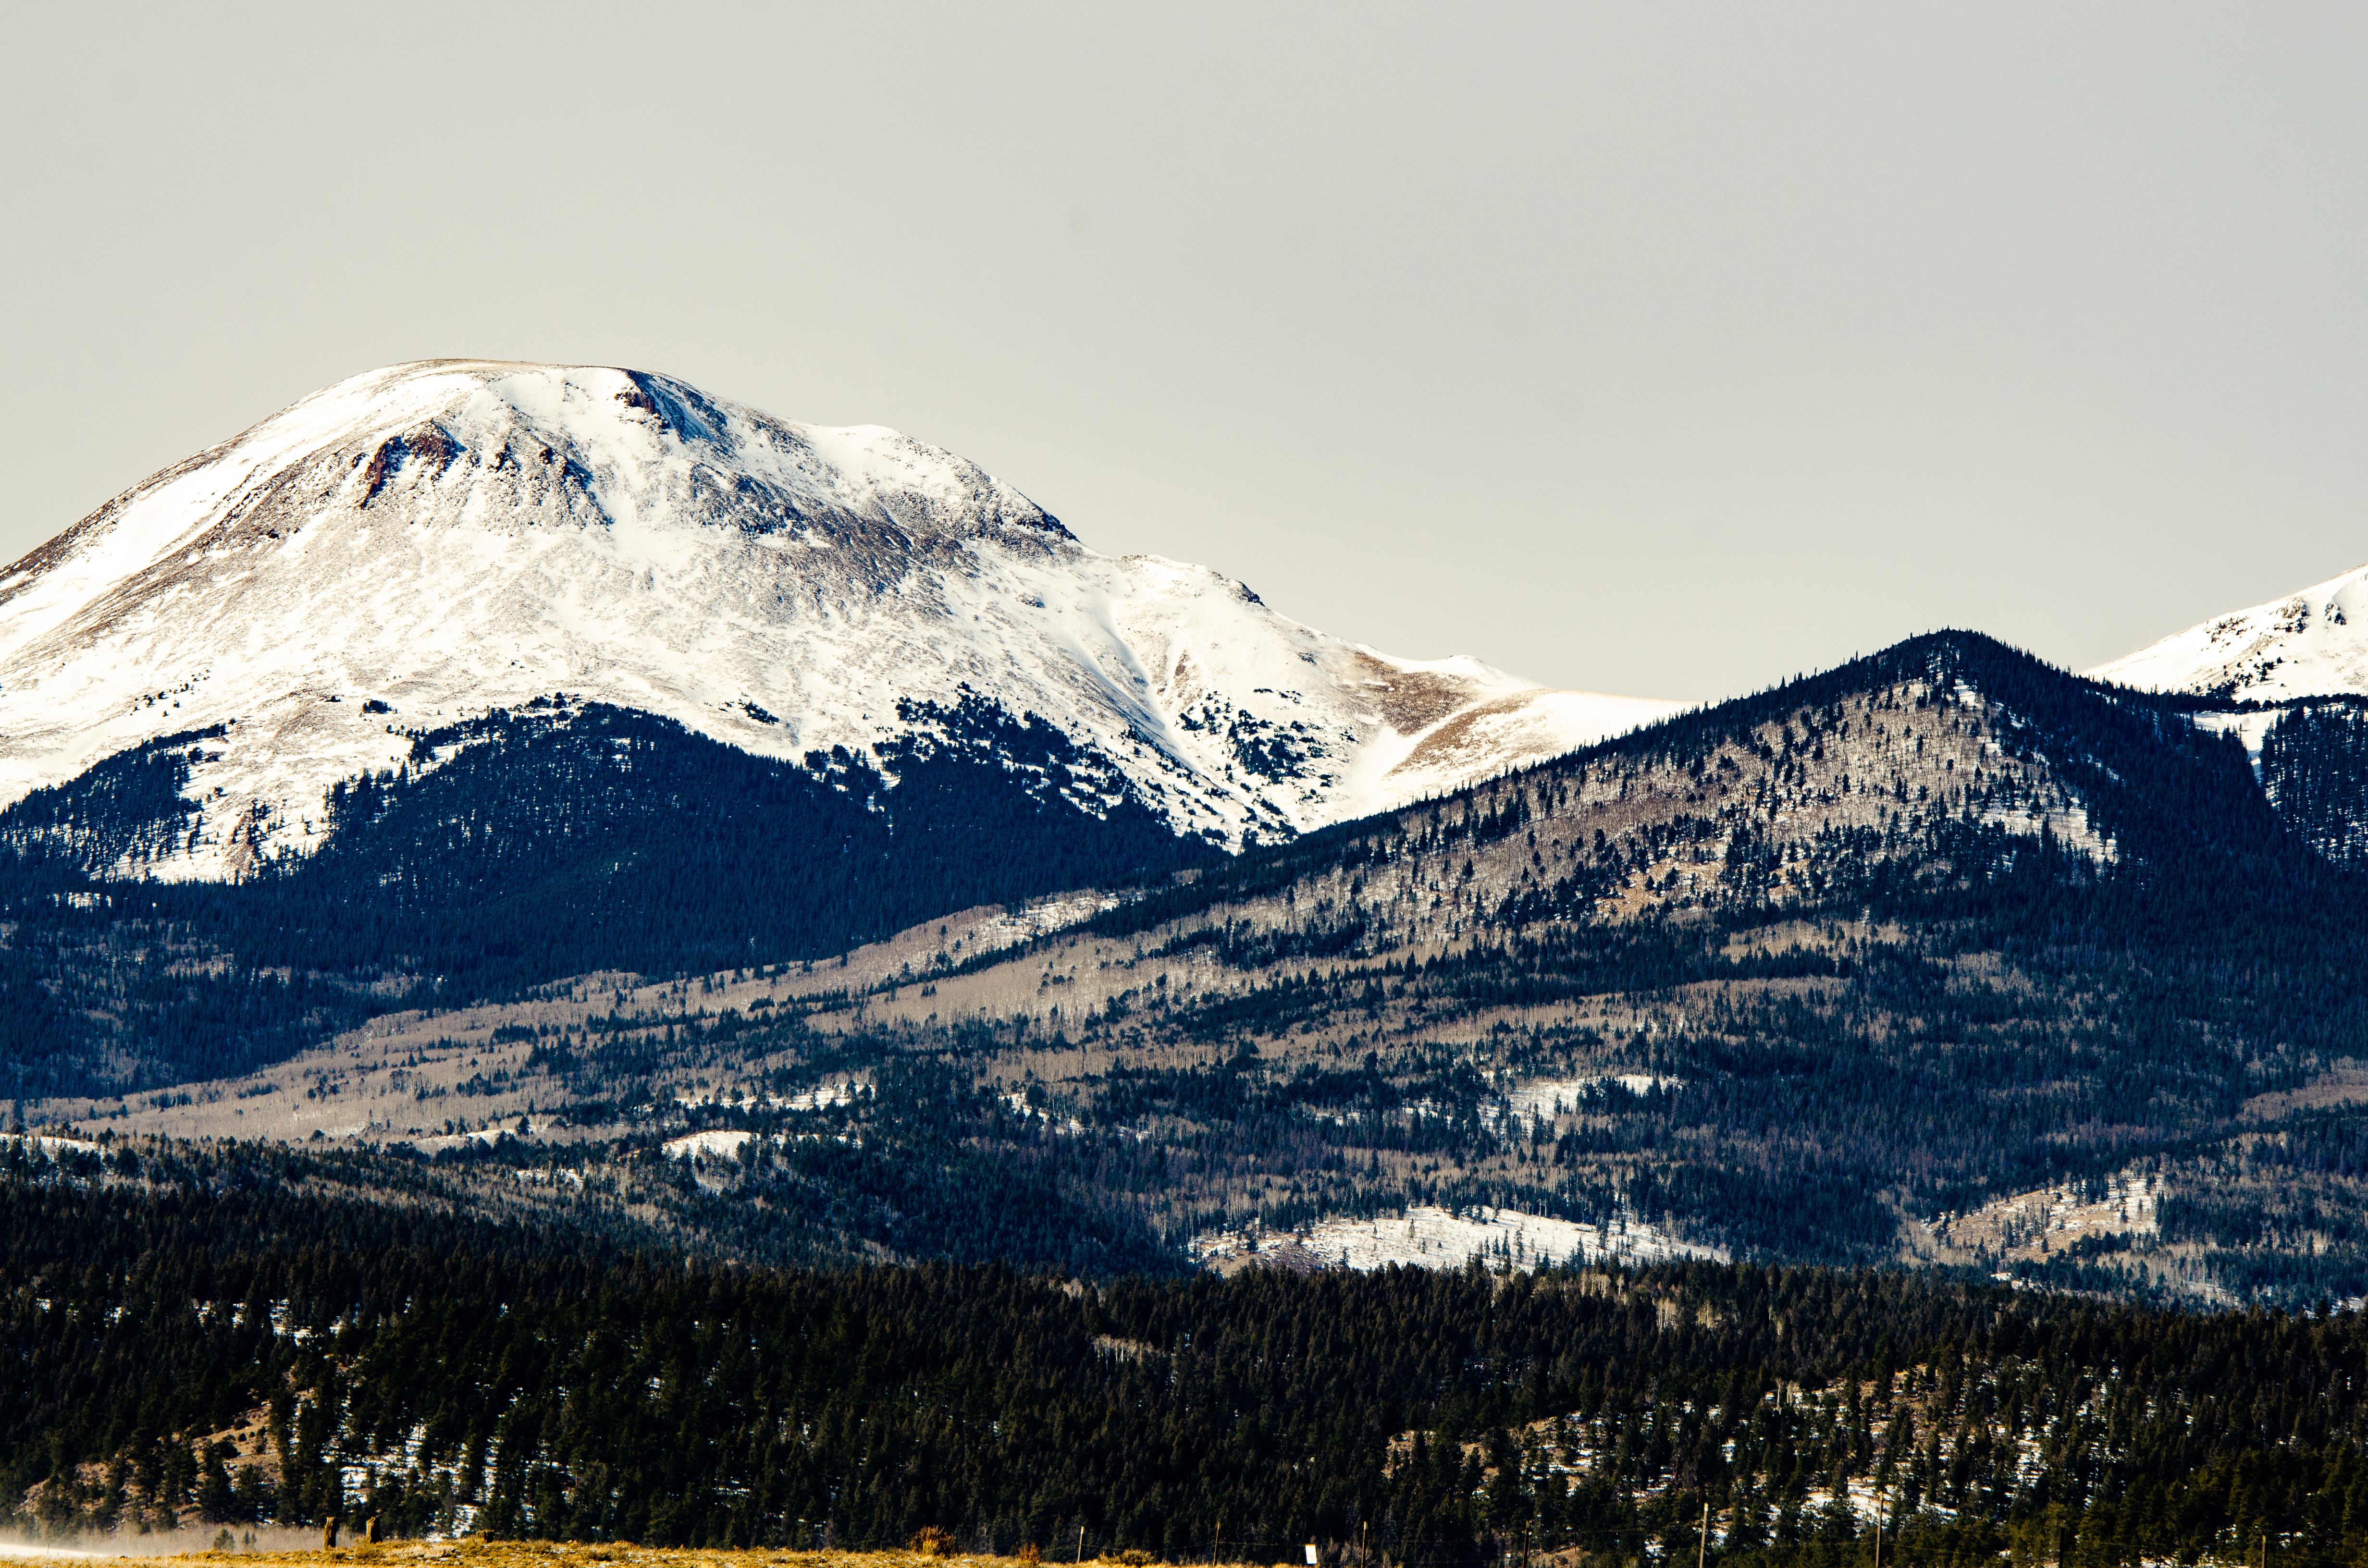 Snow capped mountains in Colorado